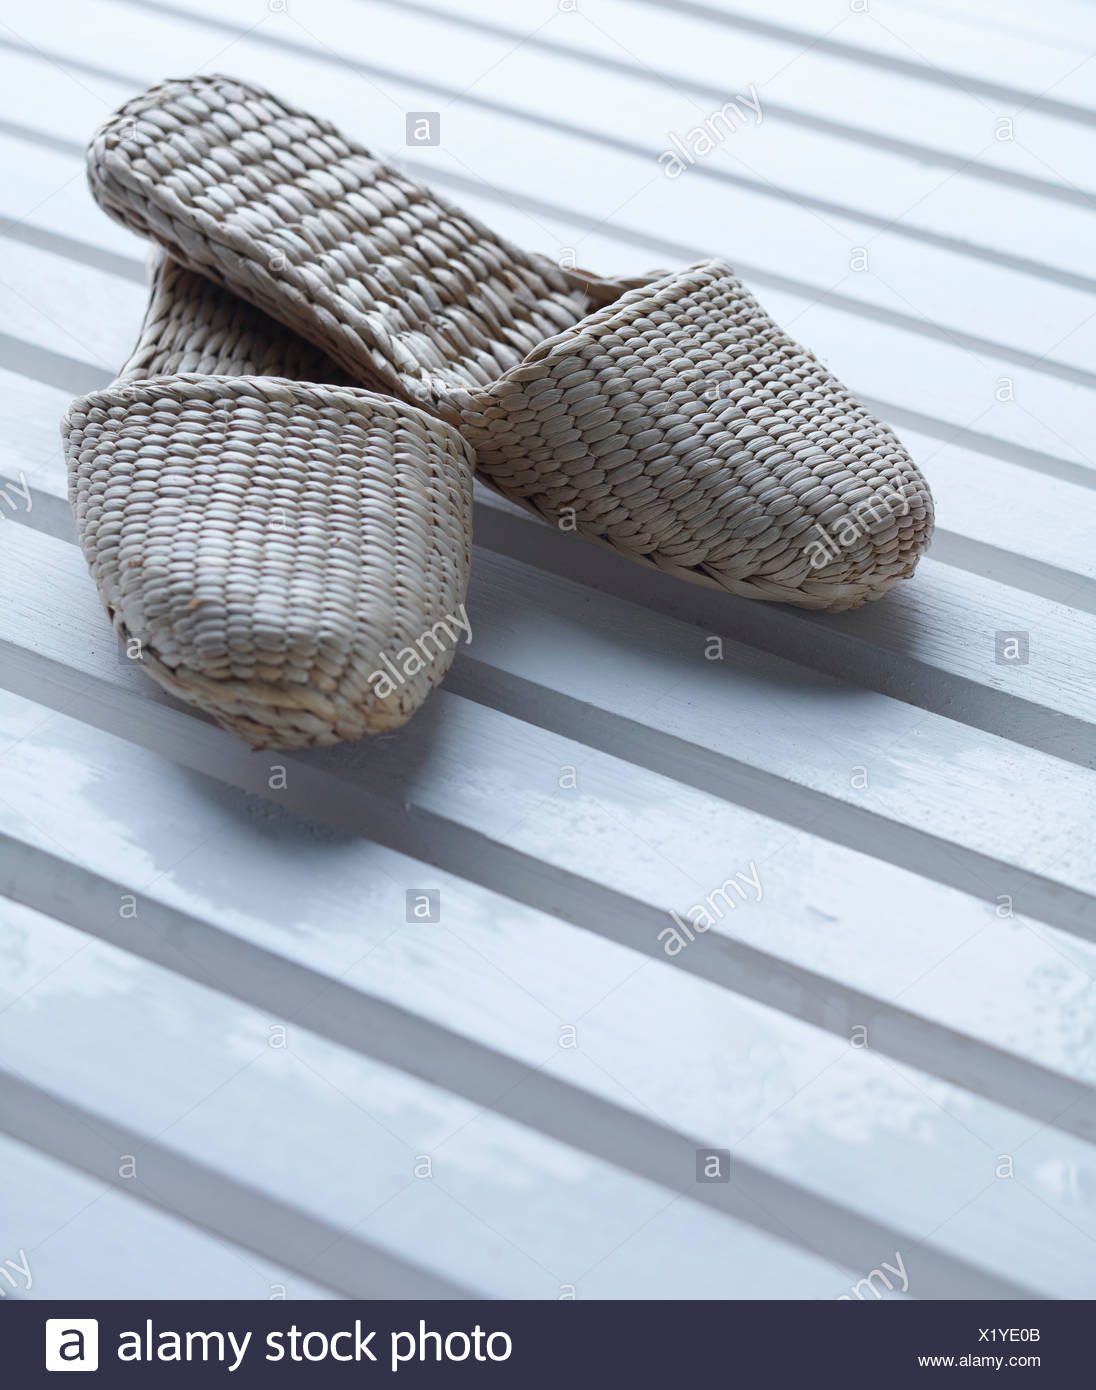 Close up of woven slippers - Stock Image